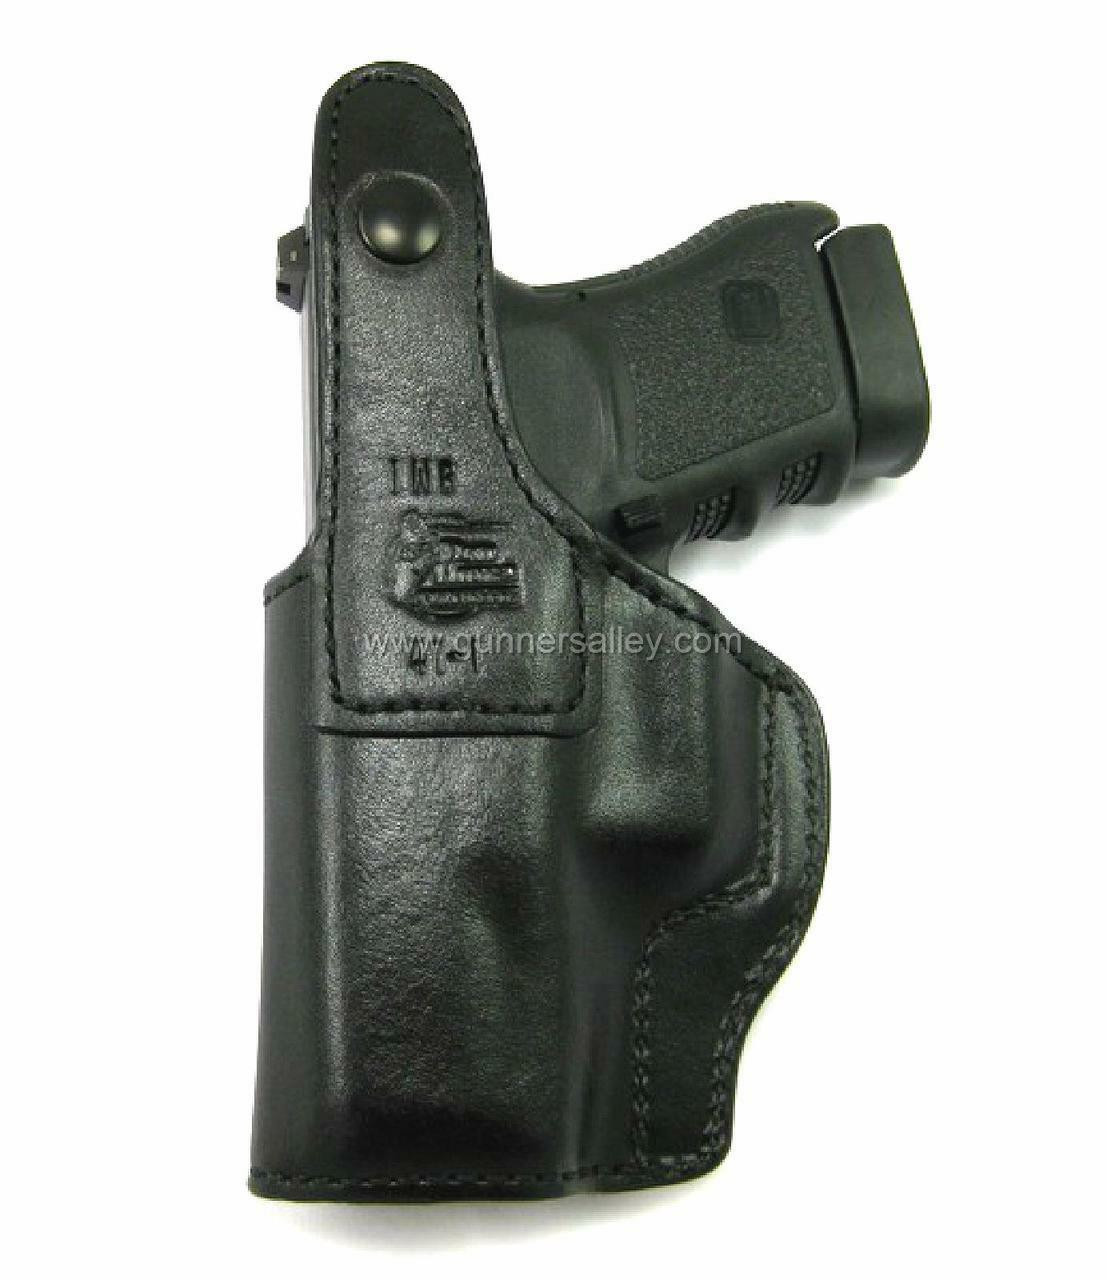 Rear View - Shown with a Glock 30 for Demonstration Purposes